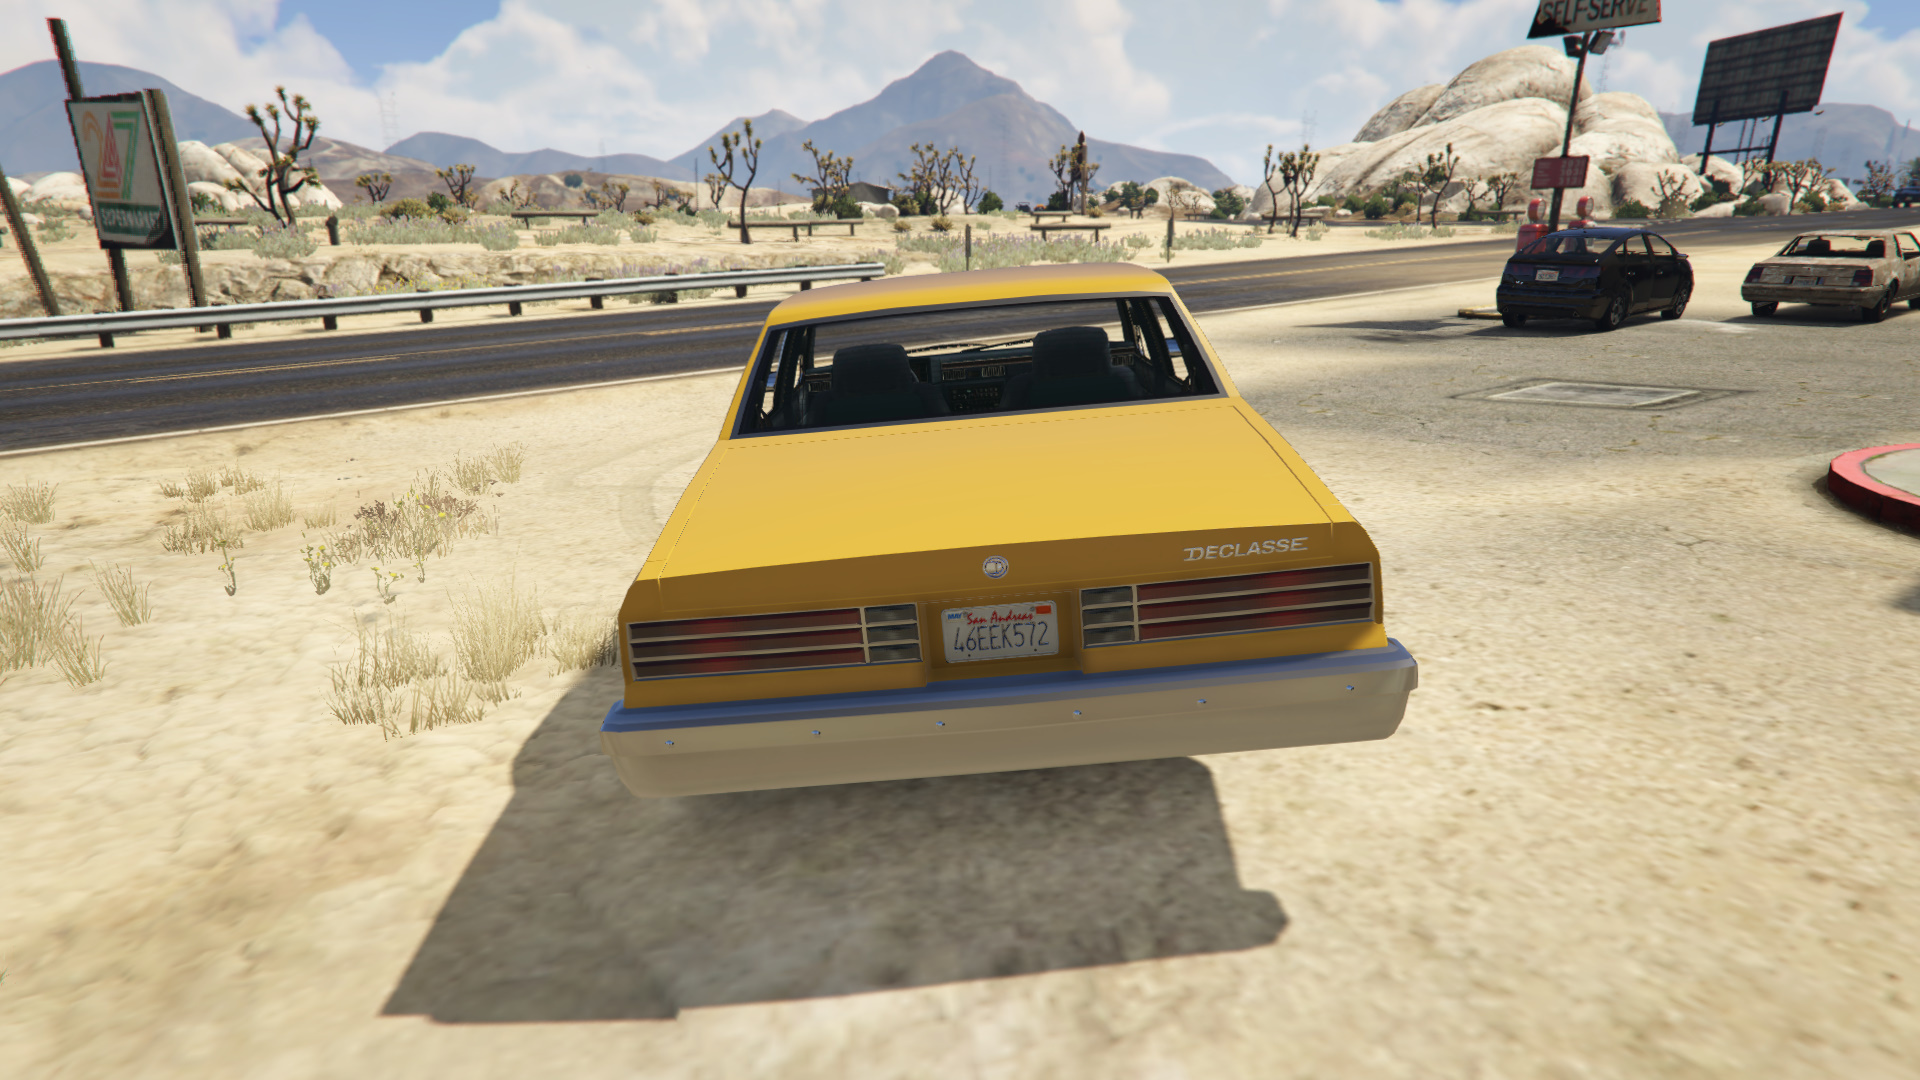 Declasse Merit Classic [Add-On / Replace] - GTA5-Mods com